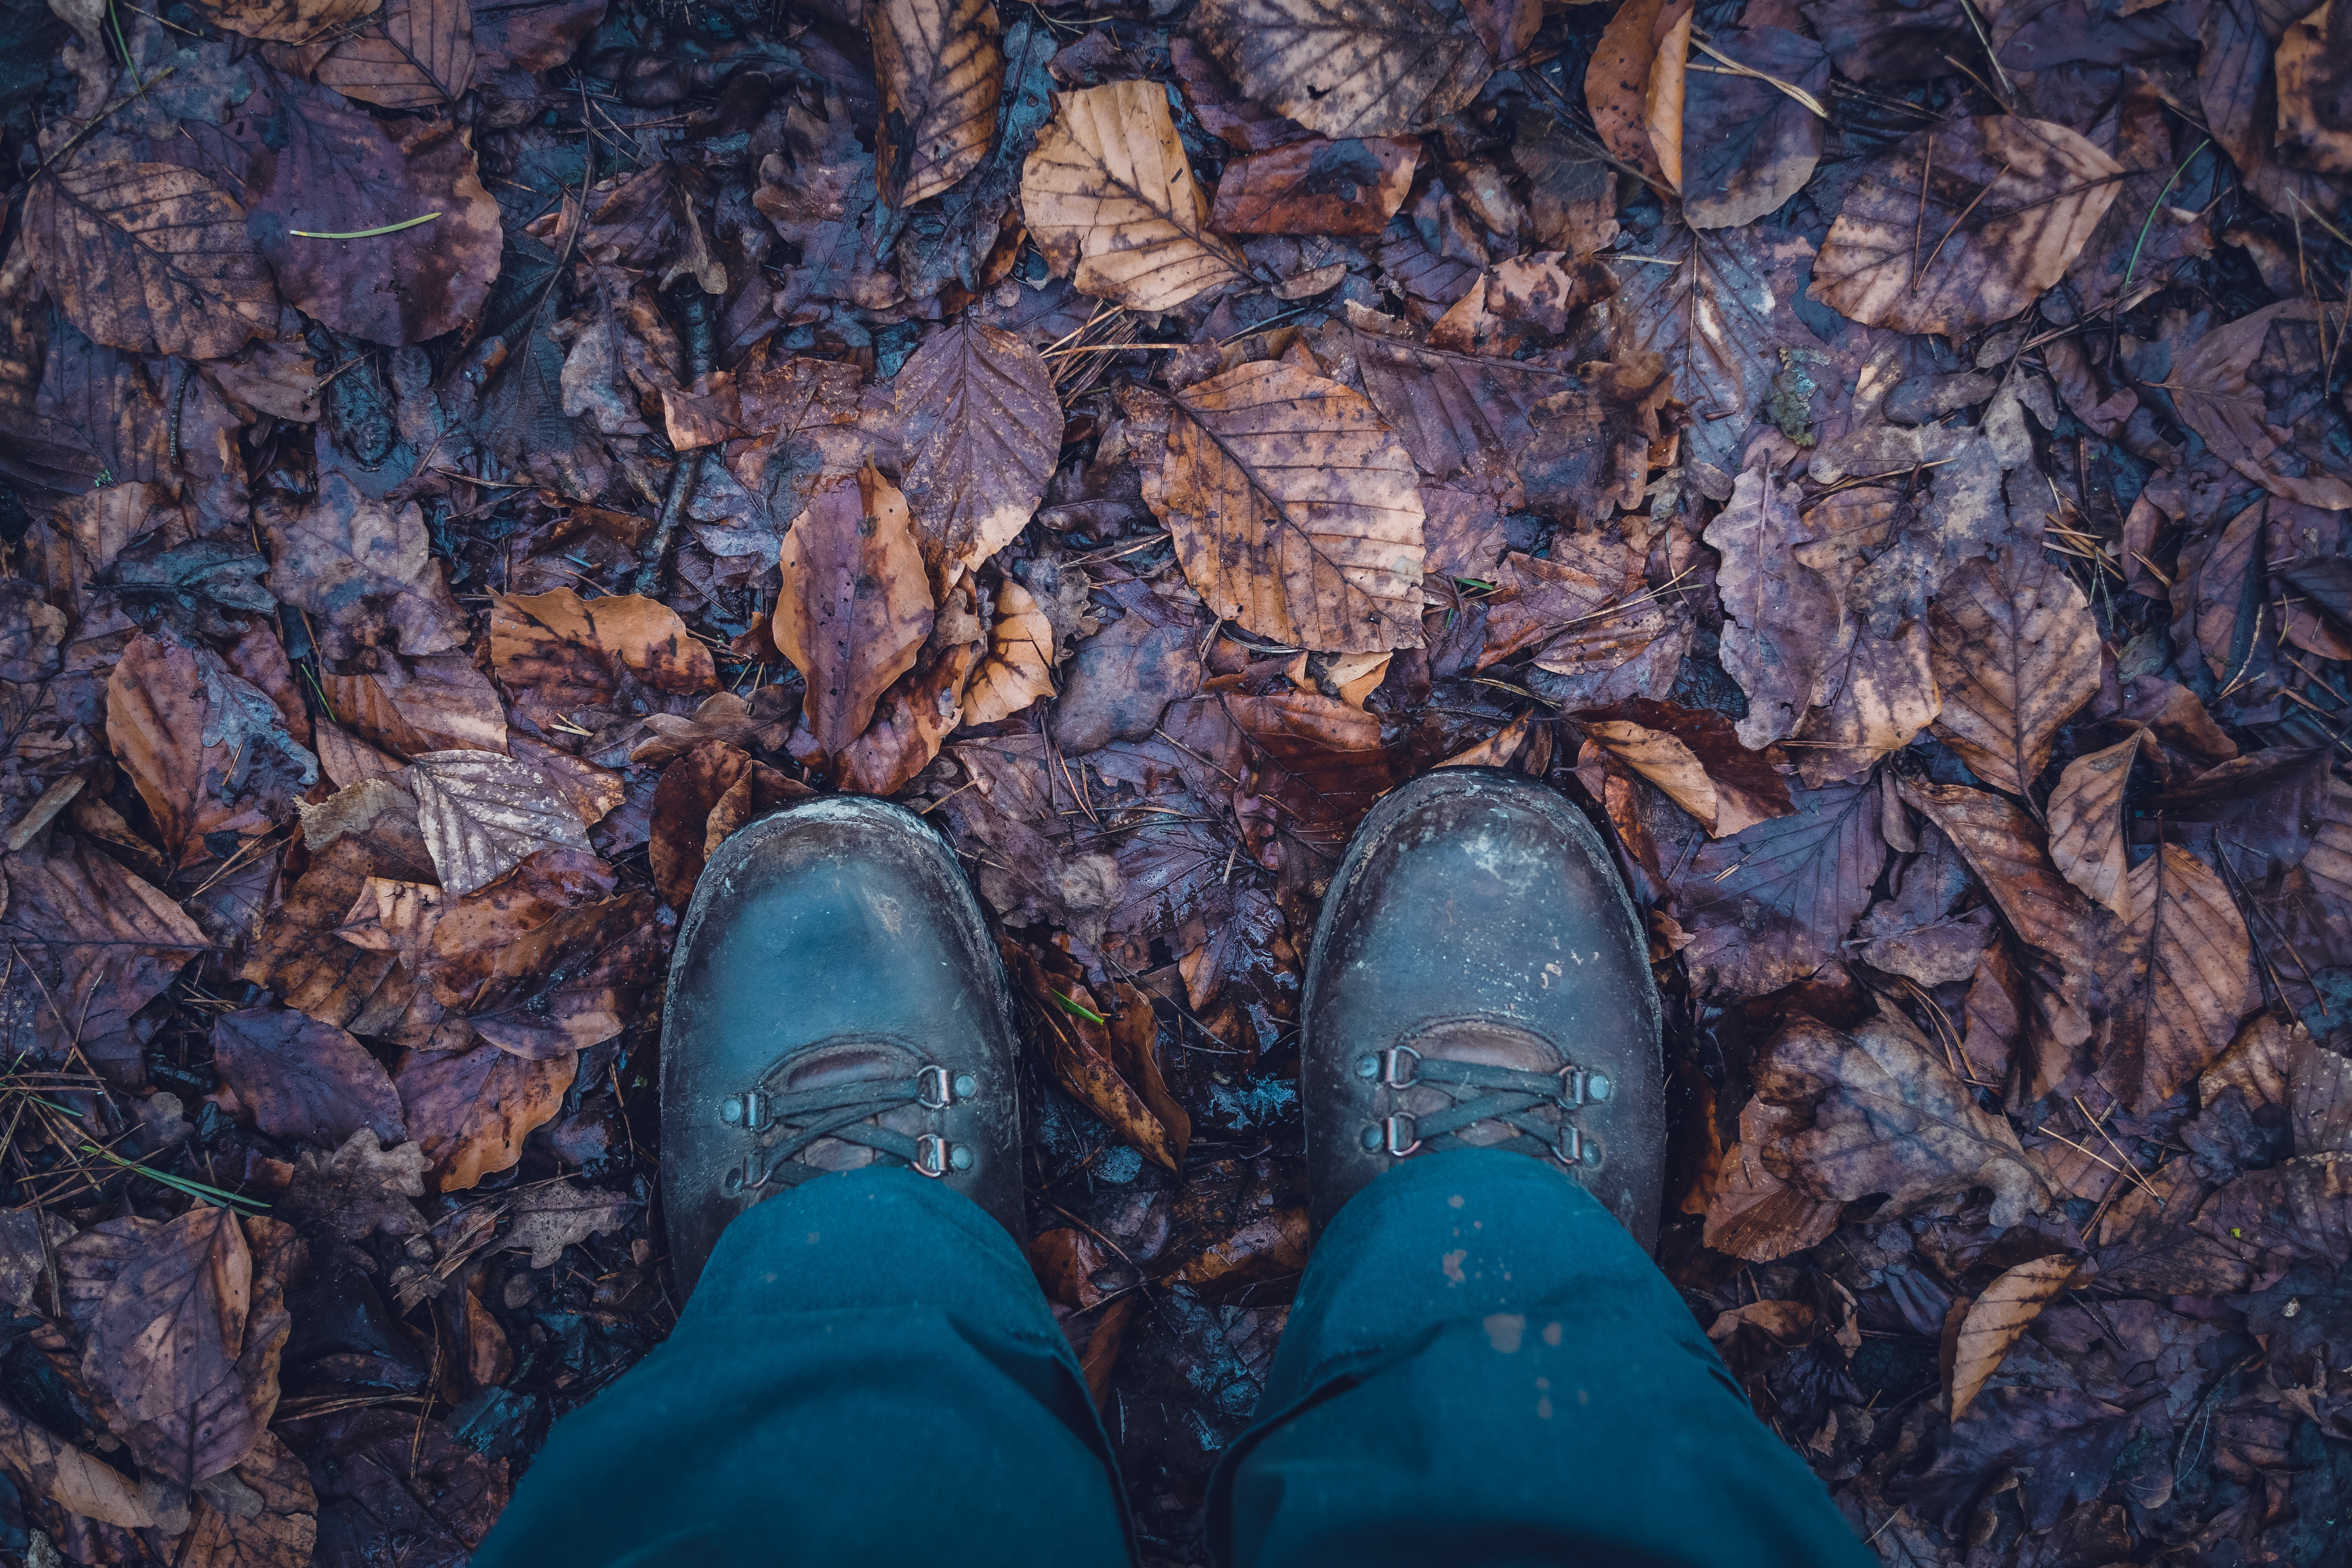 Brown Boots on Fall Leaves